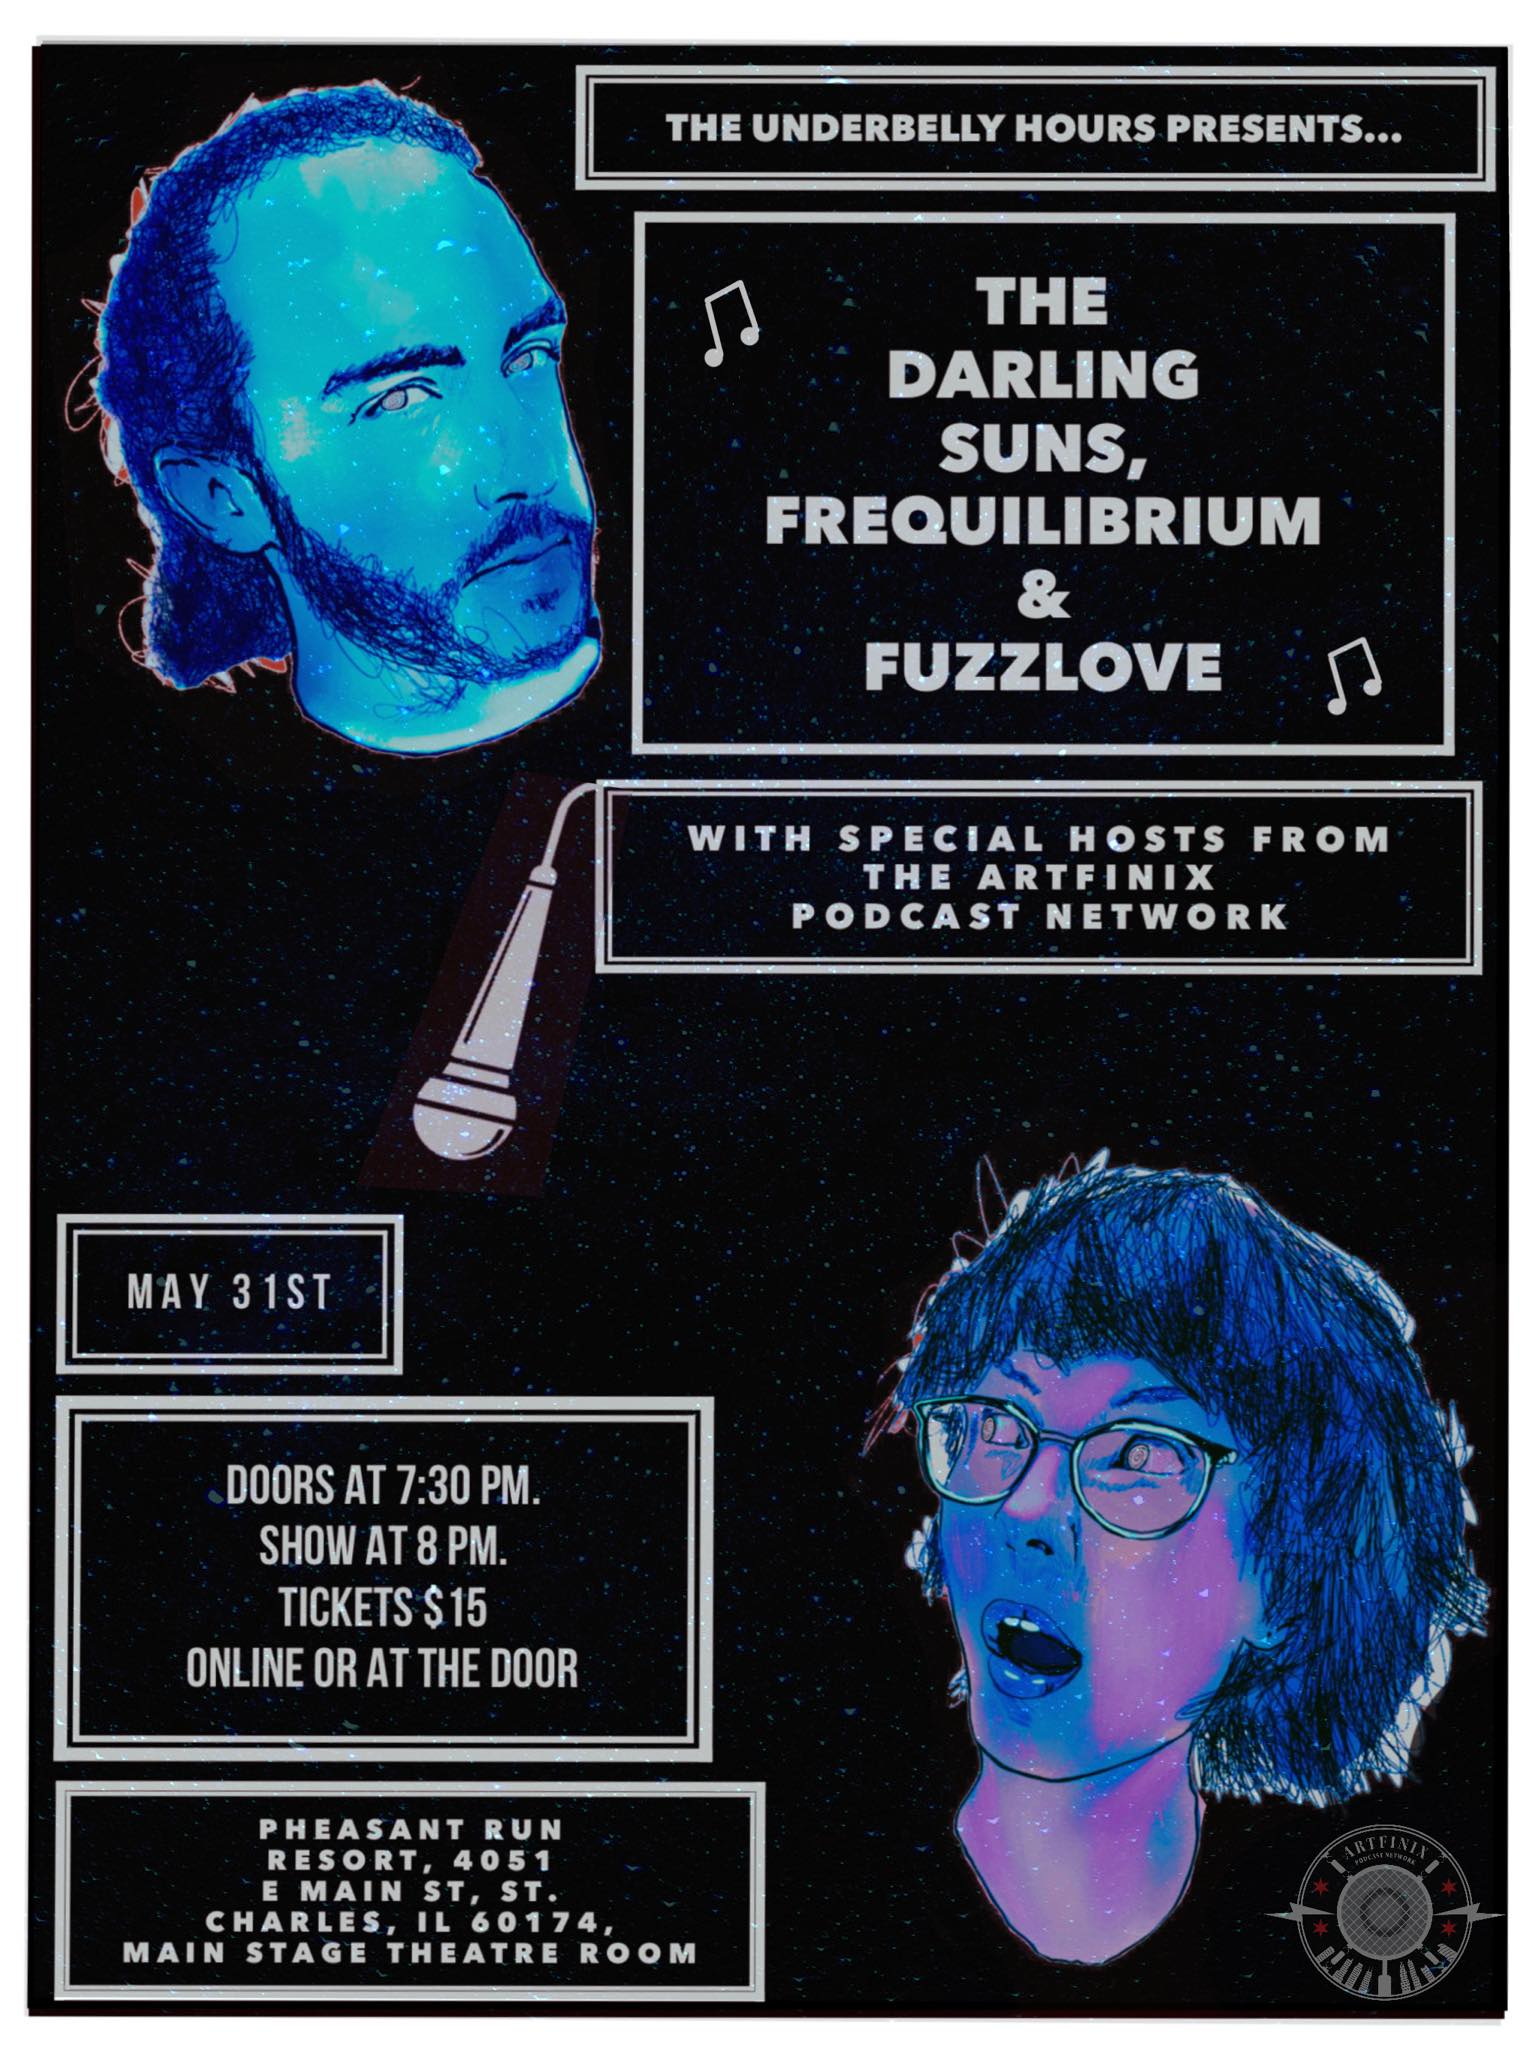 5/31  at  Pheasant Run  in  St. Charles, IL.  w/  Fuzzlove & Frequilibrium